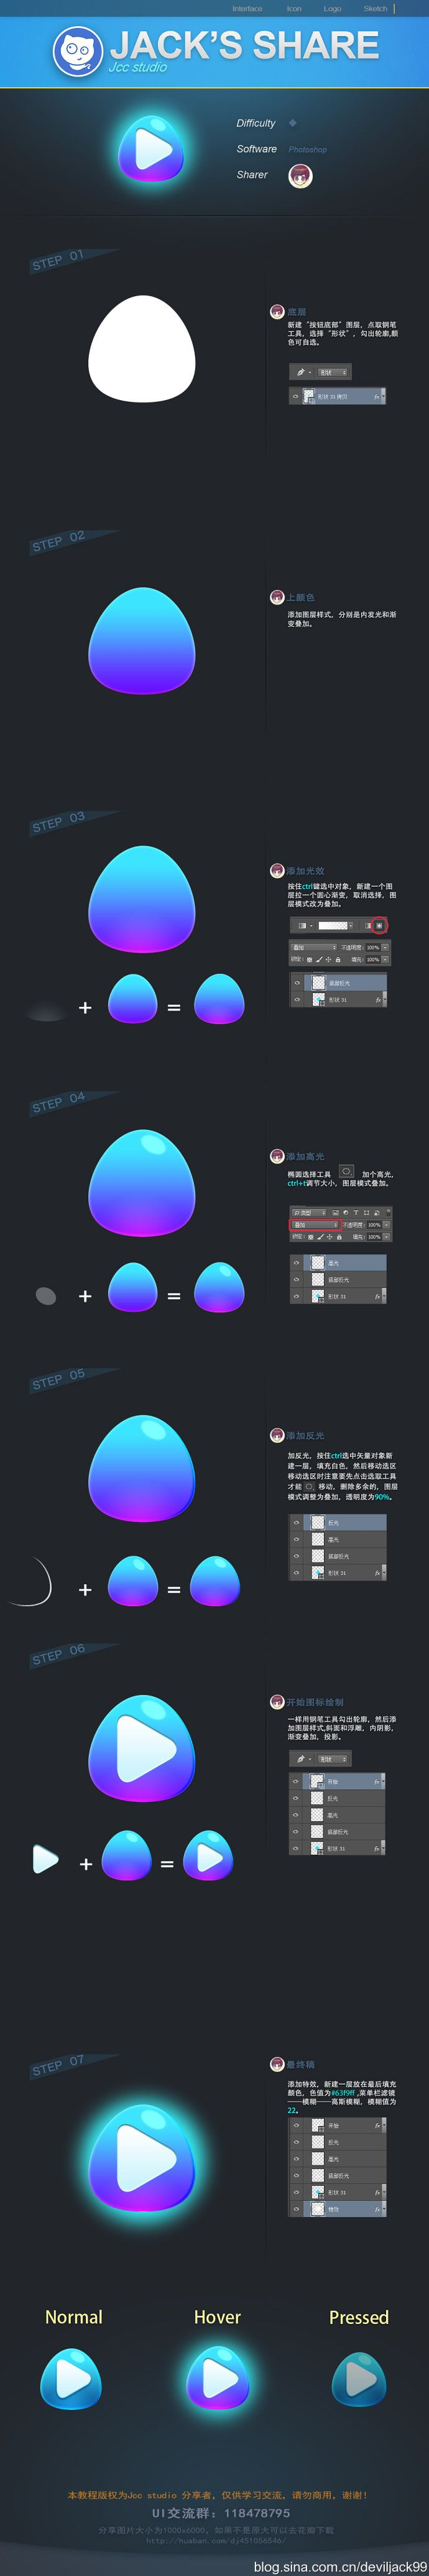 Jcc <wbr>studio公益教程-上半年篇(game <wbr>UI/Interface/icon/logo/GUI/art/图标/界面/教程/素材/资源)